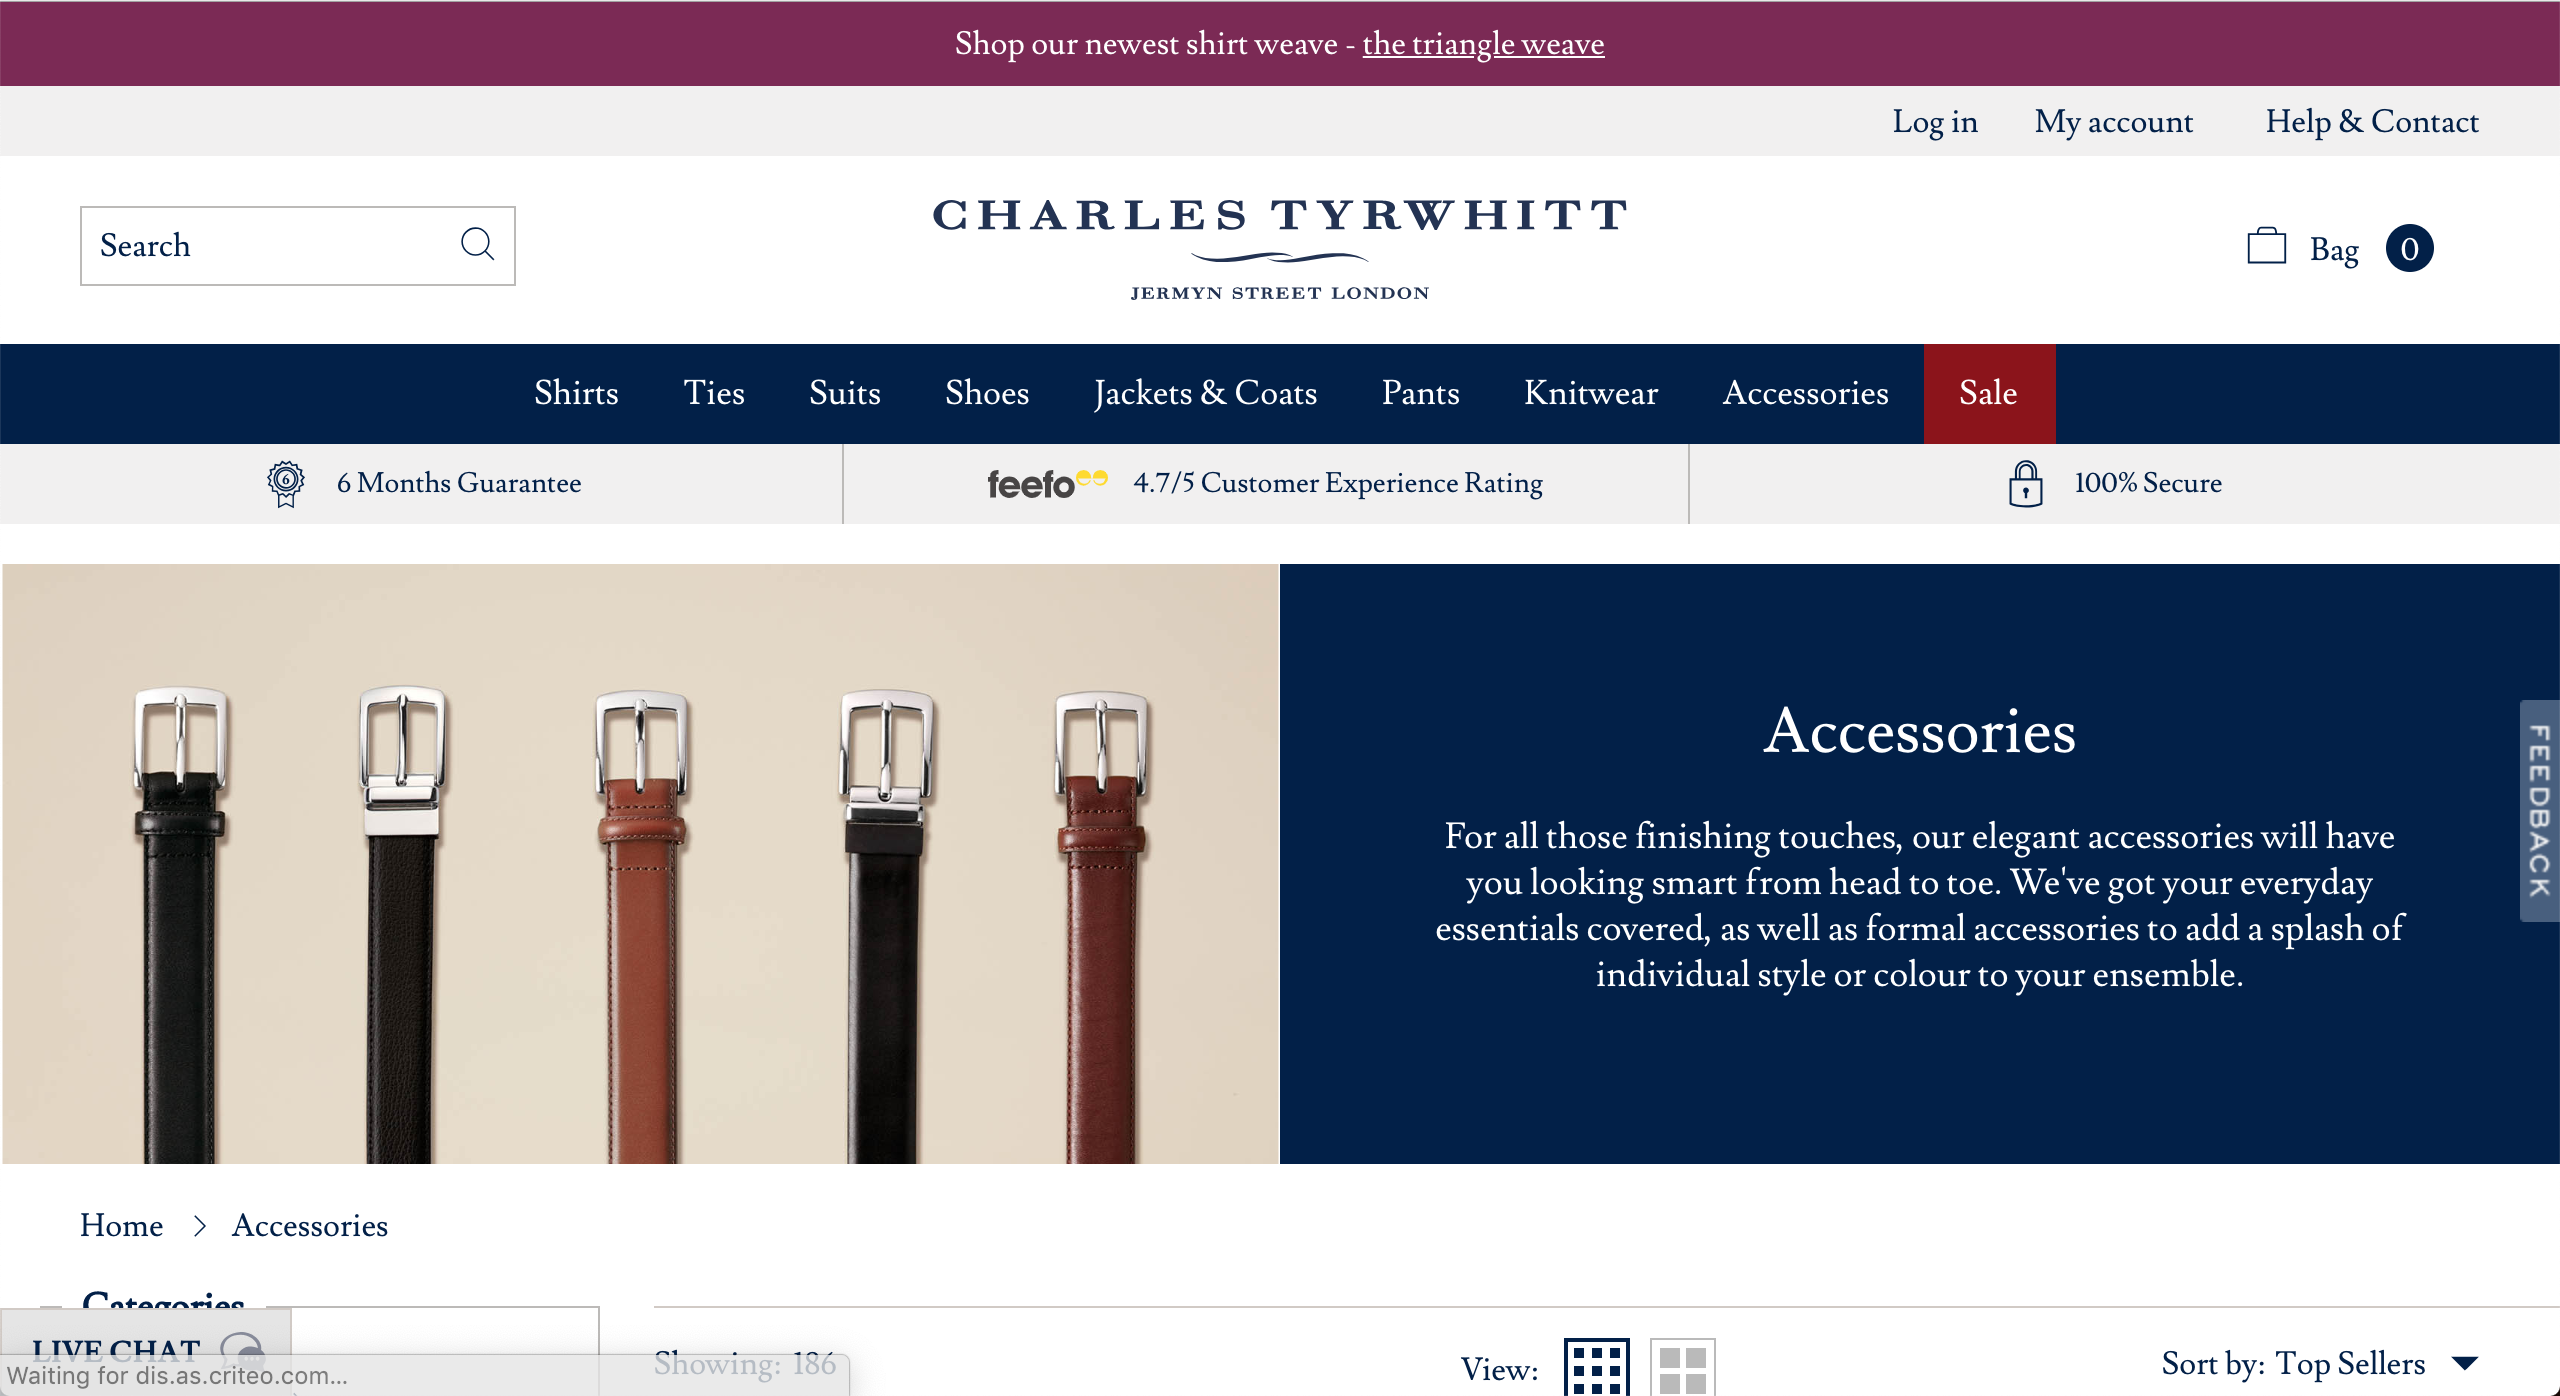 Charles Tyrwhitt Accessories page